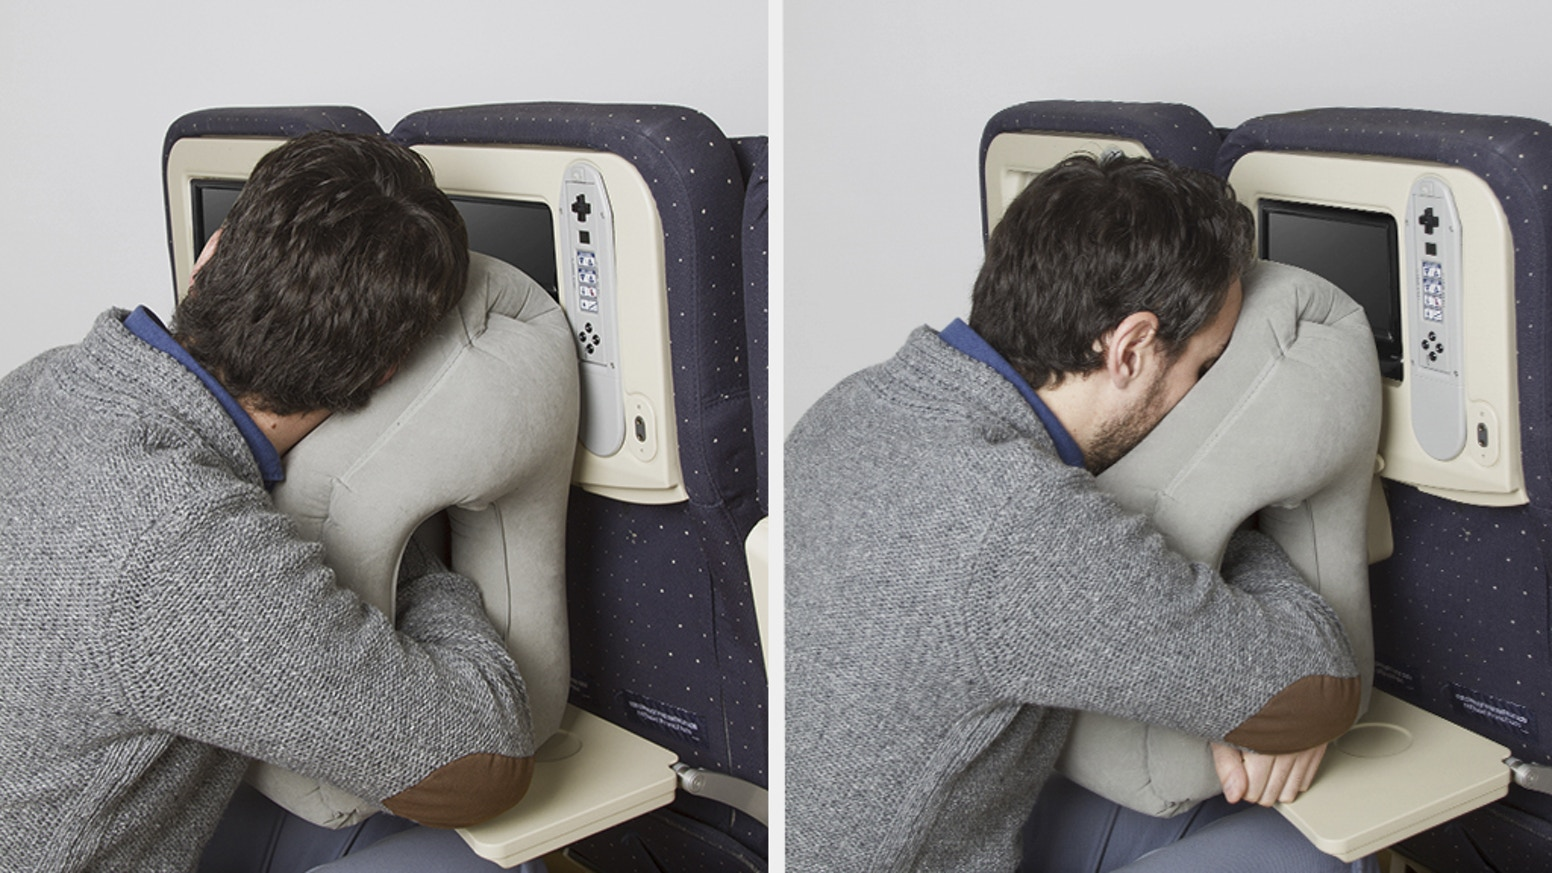 Woollip is an innovative frontal travel pillow that will allow you to find your ideal sleeping position. It's time to get on board!